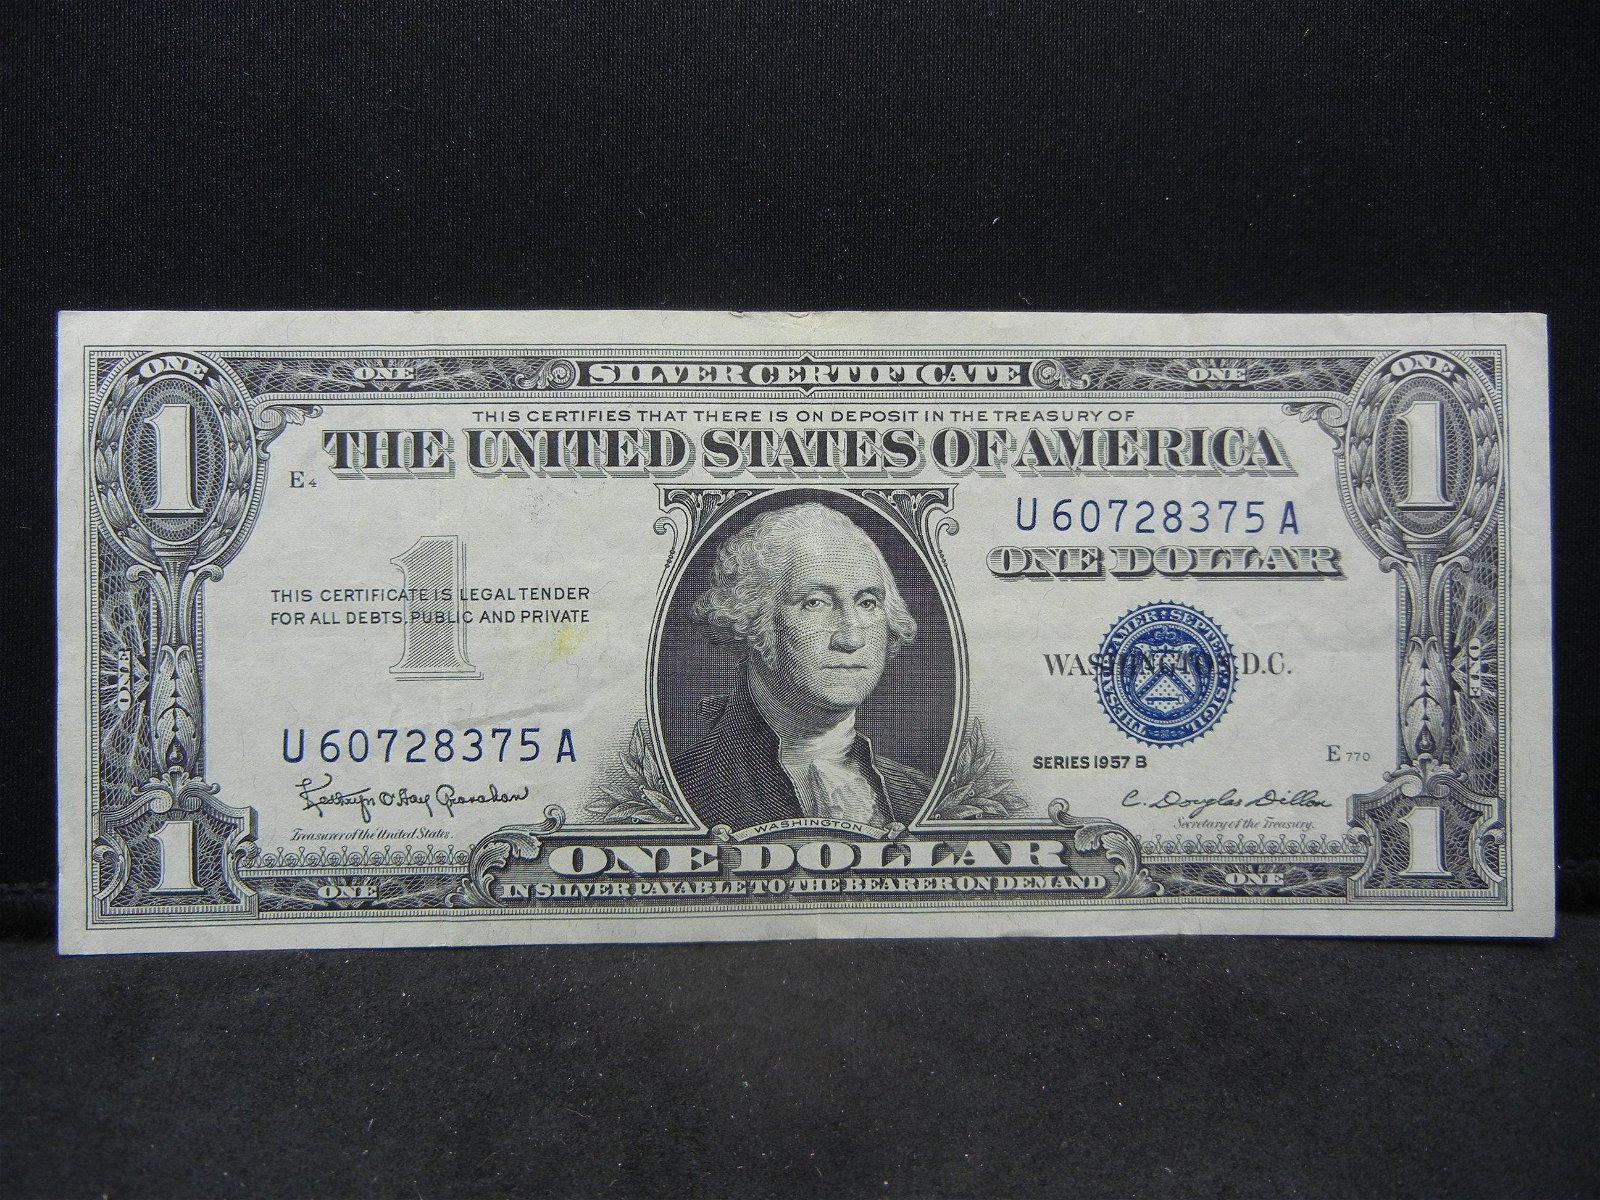 Series 1957 B United States $1.00 Silver Certificate